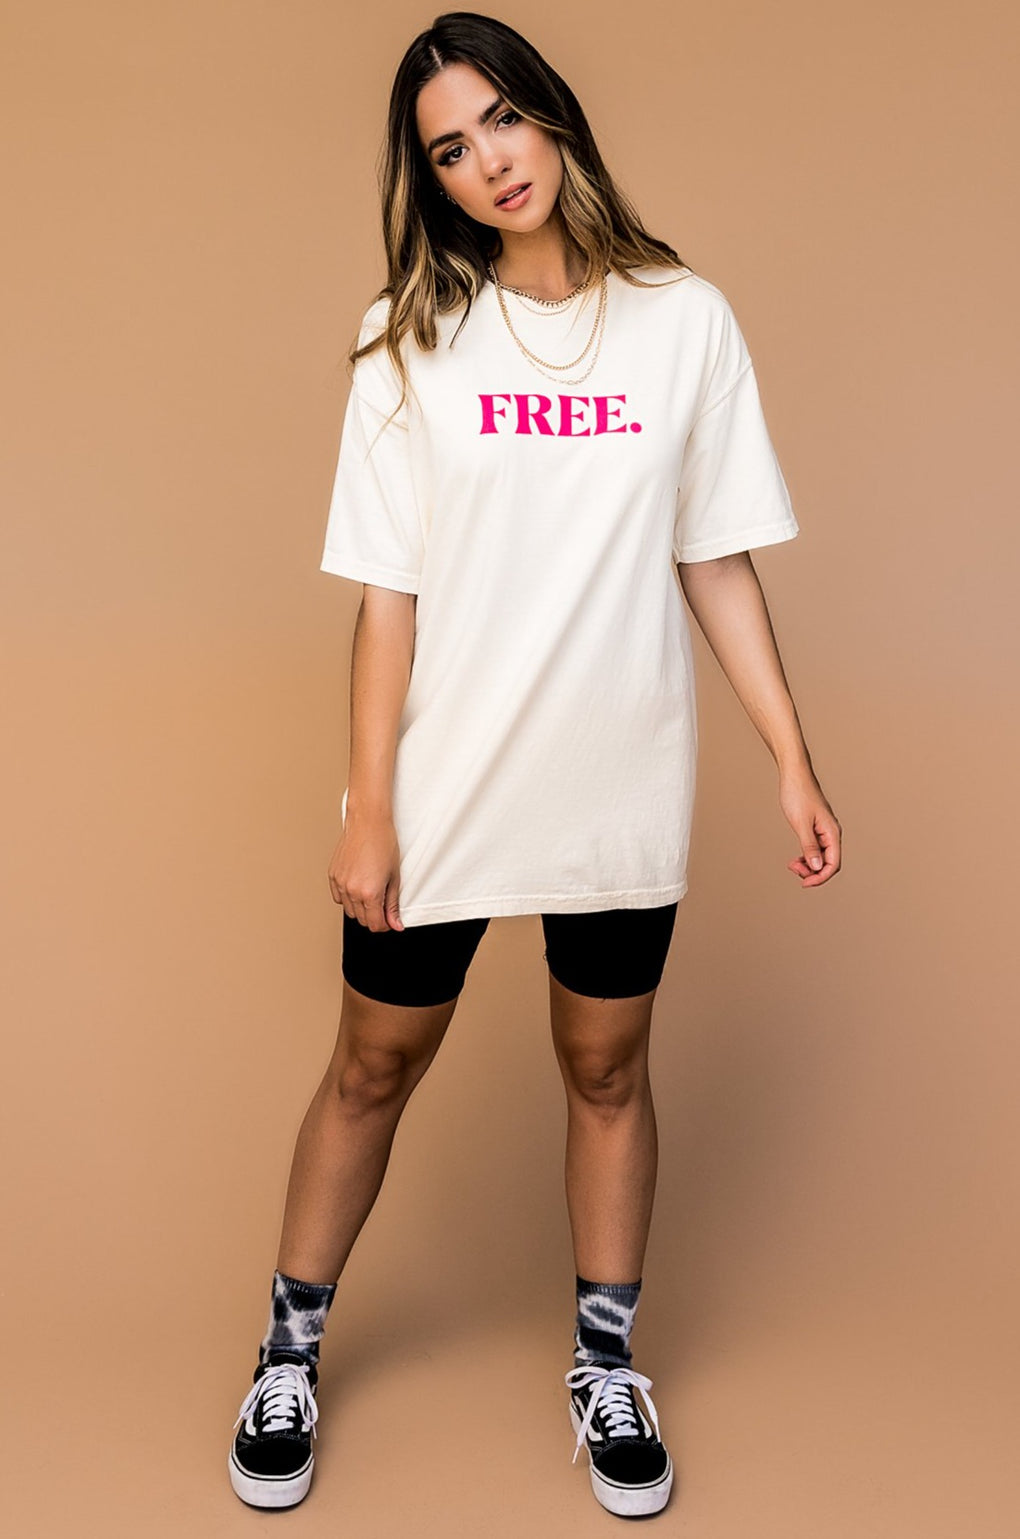 LALA ORIGINAL DESIGN: She Is Free Tee